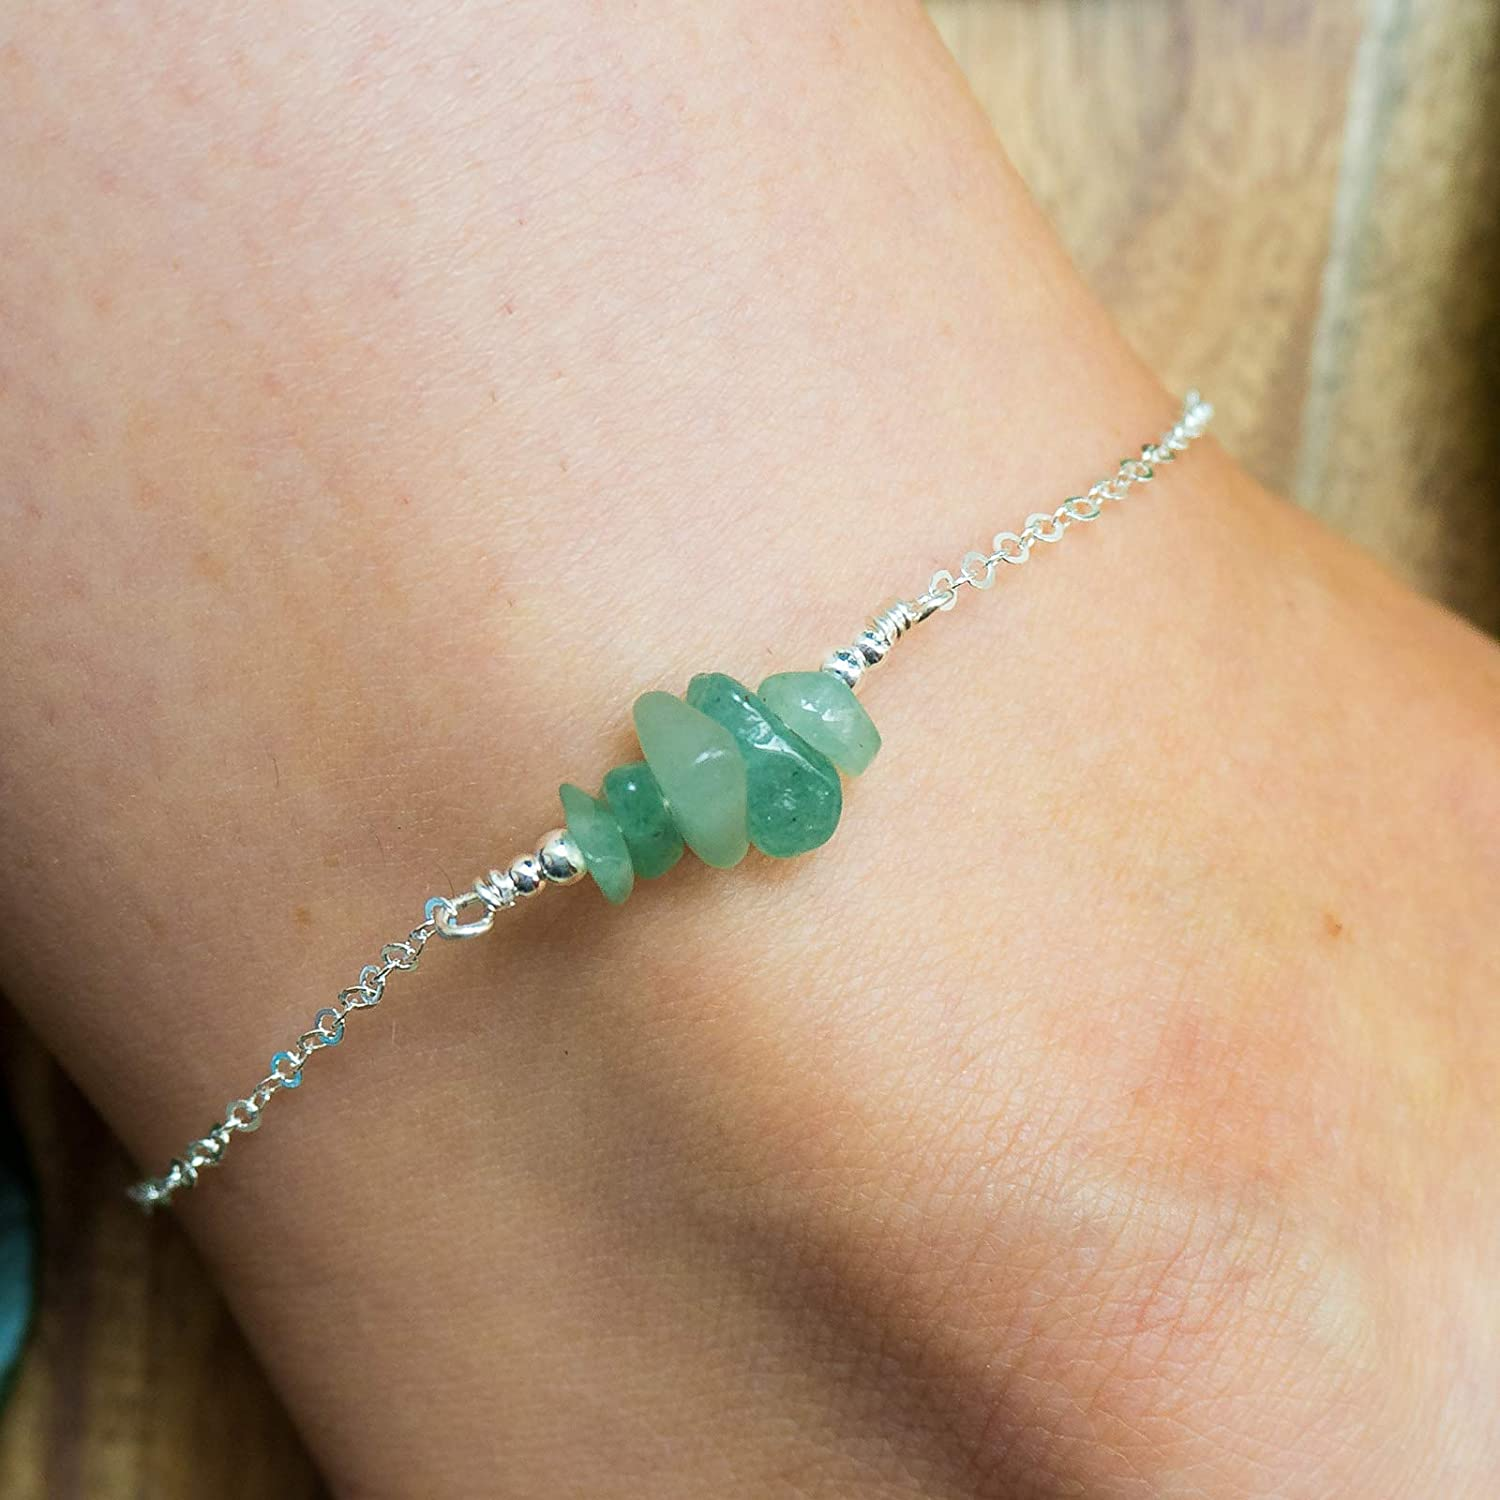 Aventurine bead bar crystal gemstone anklet in bronze, silver, gold or rose gold - 8' chain with 2' adjustable extender gold or rose gold - 8 chain with 2 adjustable extender